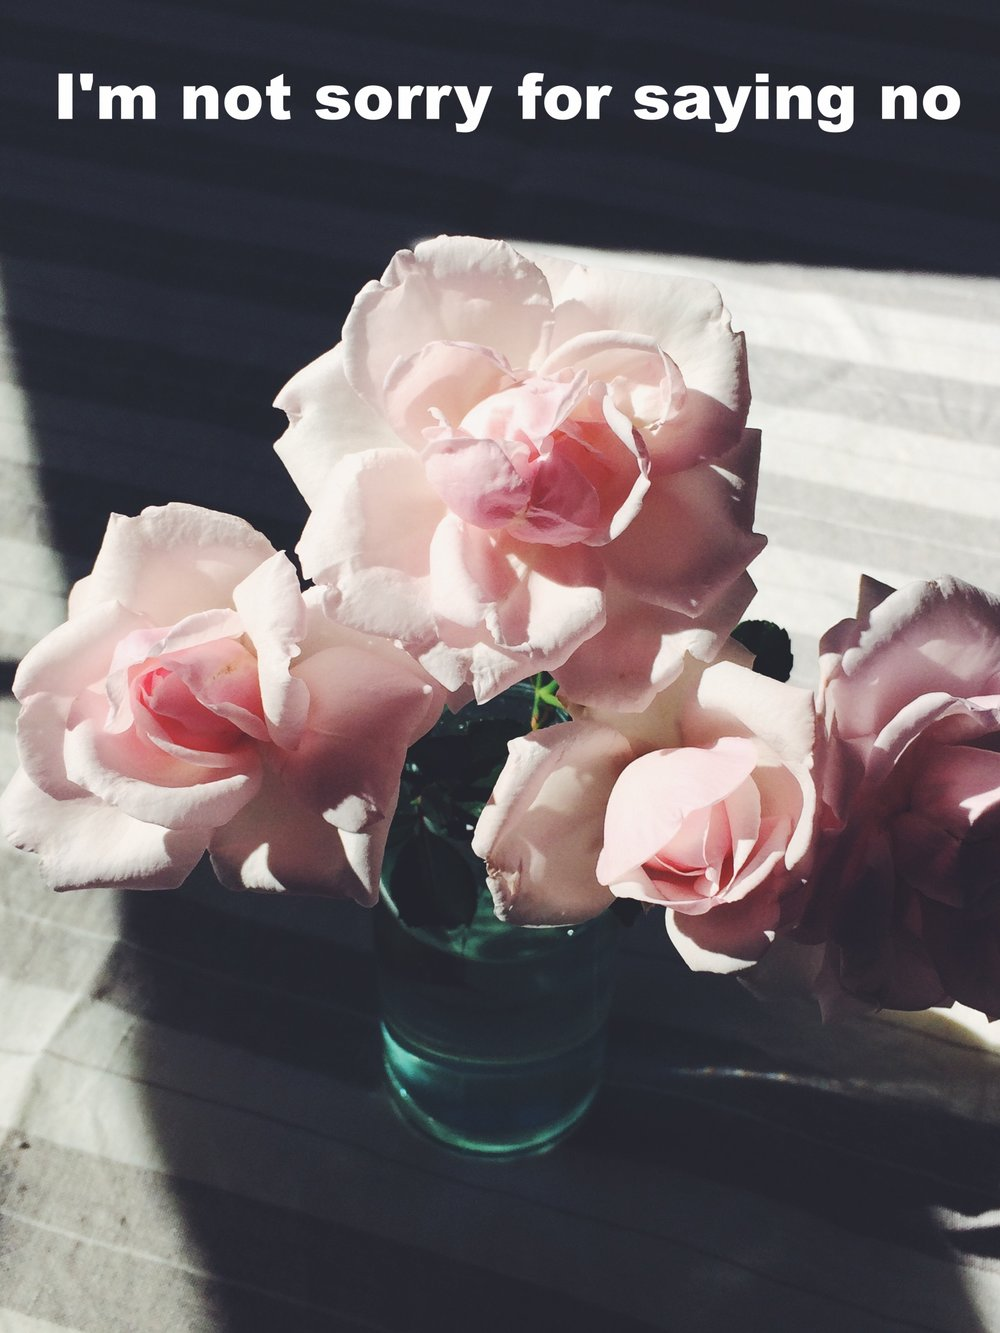 "Elizabeth March 30 2017 Image of several pink flowers in a light blue clear vase on a white and gray striped table cloth in the sun. ""I'm not sorry for saying no"" is overlaid. Photo by Laura Harrington."